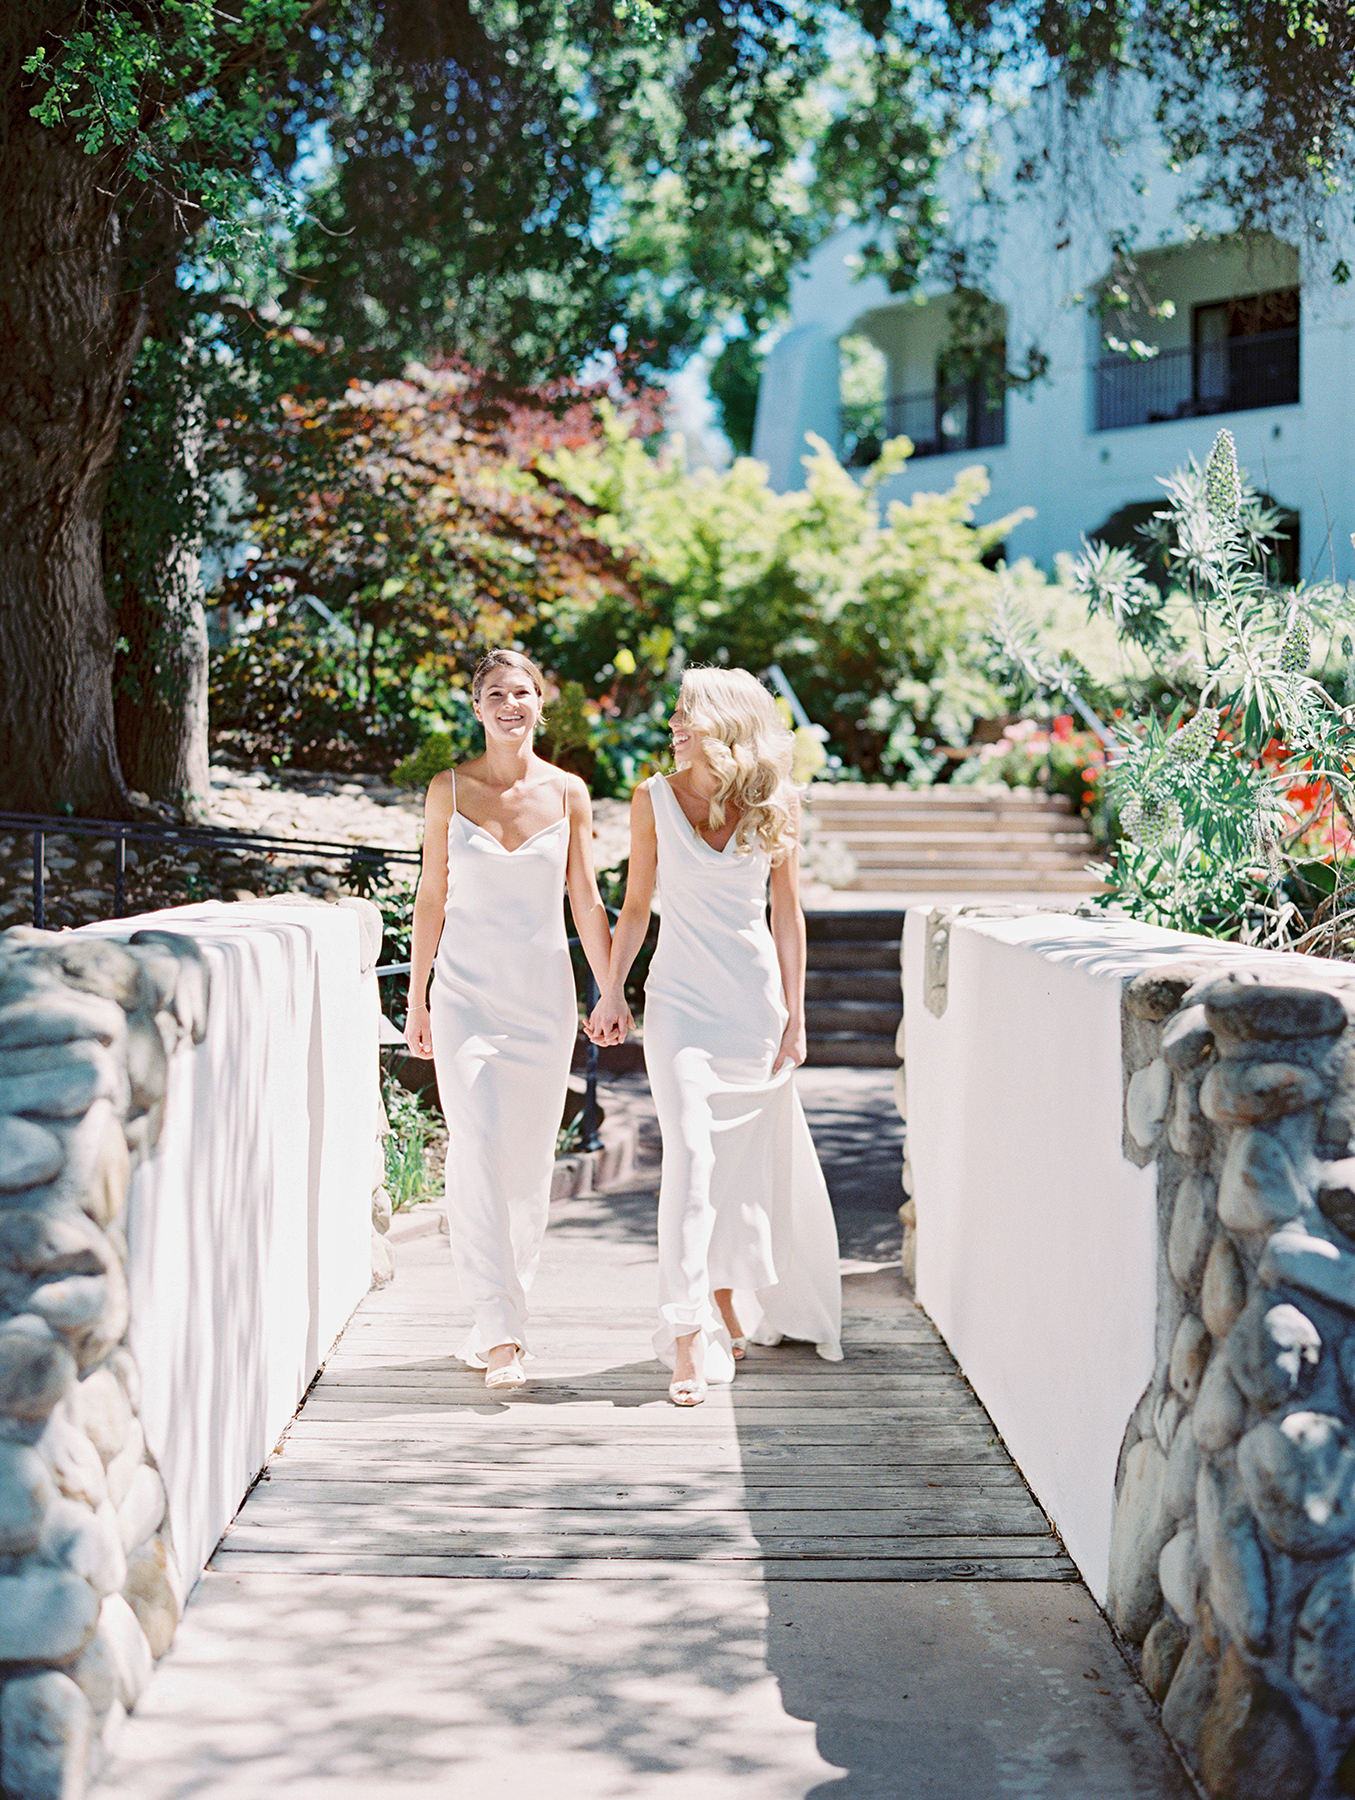 Go ahead and schedule some alone time together. These brides held hands as they took an intimate stroll, for example.